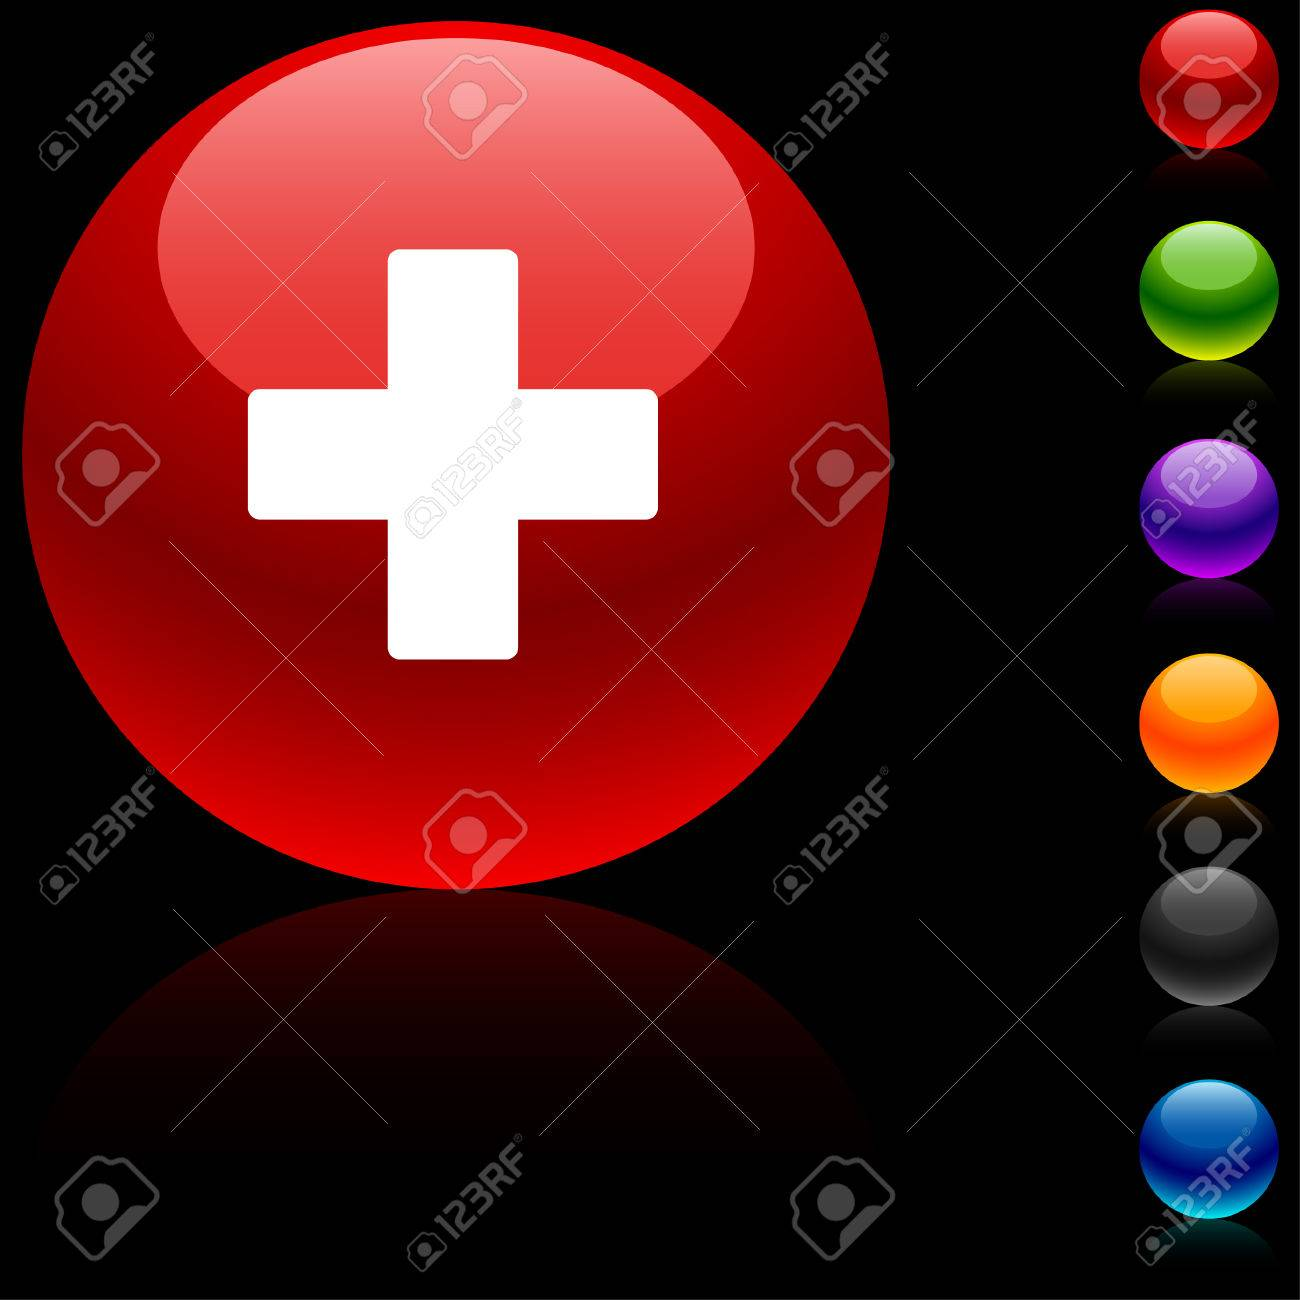 Switzerland  glossy icon. Stock Vector - 5662473